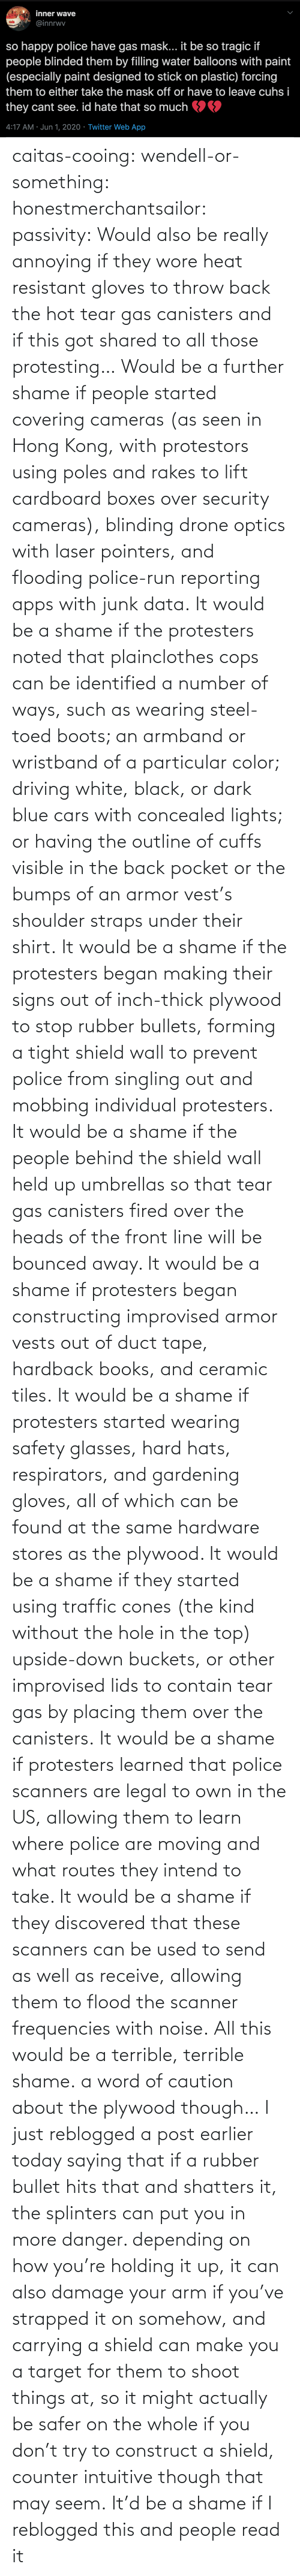 Drone: caitas-cooing:  wendell-or-something: honestmerchantsailor:  passivity: Would also be really annoying if they wore heat resistant gloves to throw back the hot tear gas canisters and if this got shared to all those protesting… Would be a further shame if people started covering cameras (as seen in Hong Kong, with protestors using poles and rakes to lift cardboard boxes over security cameras), blinding drone optics with laser pointers, and flooding police-run reporting apps with junk data. It would be a shame if the protesters noted that plainclothes cops can be identified a number of ways, such as wearing steel-toed boots; an armband or wristband of a particular color; driving white, black, or dark blue cars with concealed lights; or having the outline of cuffs visible in the back pocket or the bumps of an armor vest's shoulder straps under their shirt. It would be a shame if the protesters began making their signs out of inch-thick plywood to stop rubber bullets, forming a tight shield wall to prevent police from singling out and mobbing individual protesters. It would be a shame if the people behind the shield wall held up umbrellas so that tear gas canisters fired over the heads of the front line will be bounced away. It would be a shame if protesters began constructing improvised armor vests out of duct tape, hardback books, and ceramic tiles. It would be a shame if protesters started wearing safety glasses, hard hats, respirators, and gardening gloves, all of which can be found at the same hardware stores as the plywood. It would be a shame if they started using traffic cones (the kind without the hole in the top) upside-down buckets, or other improvised lids to contain tear gas by placing them over the canisters. It would be a shame if protesters learned that police scanners are legal to own in the US, allowing them to learn where police are moving and what routes they intend to take. It would be a shame if they discovered that these scanners can be used to send as well as receive, allowing them to flood the scanner frequencies with noise. All this would be a terrible, terrible shame.    a word of caution about the plywood though… I just reblogged a post earlier today saying that if a rubber bullet hits that and shatters it, the splinters can put you in more danger. depending on how you're holding it up, it can also damage your arm if you've strapped it on somehow, and carrying a shield can make you a target for them to shoot things at, so it might actually be safer on the whole if you don't try to construct a shield, counter intuitive though that may seem.    It'd be a shame if I reblogged this and people read it